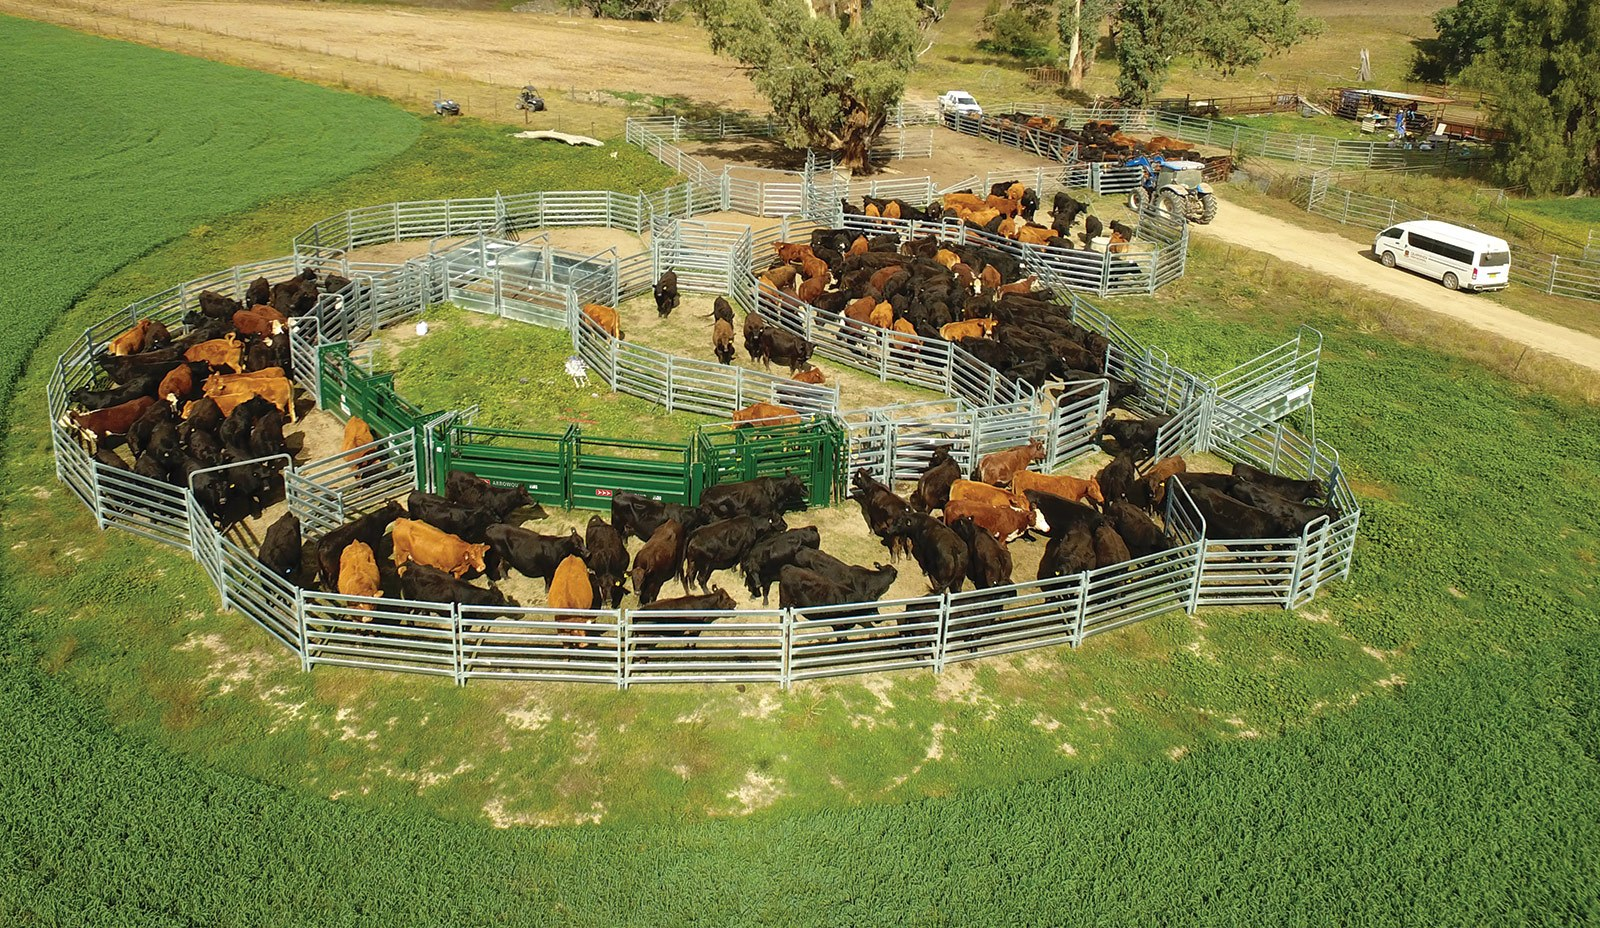 Large Cattle Yard Designs: Financing Available For All Sized Cattle